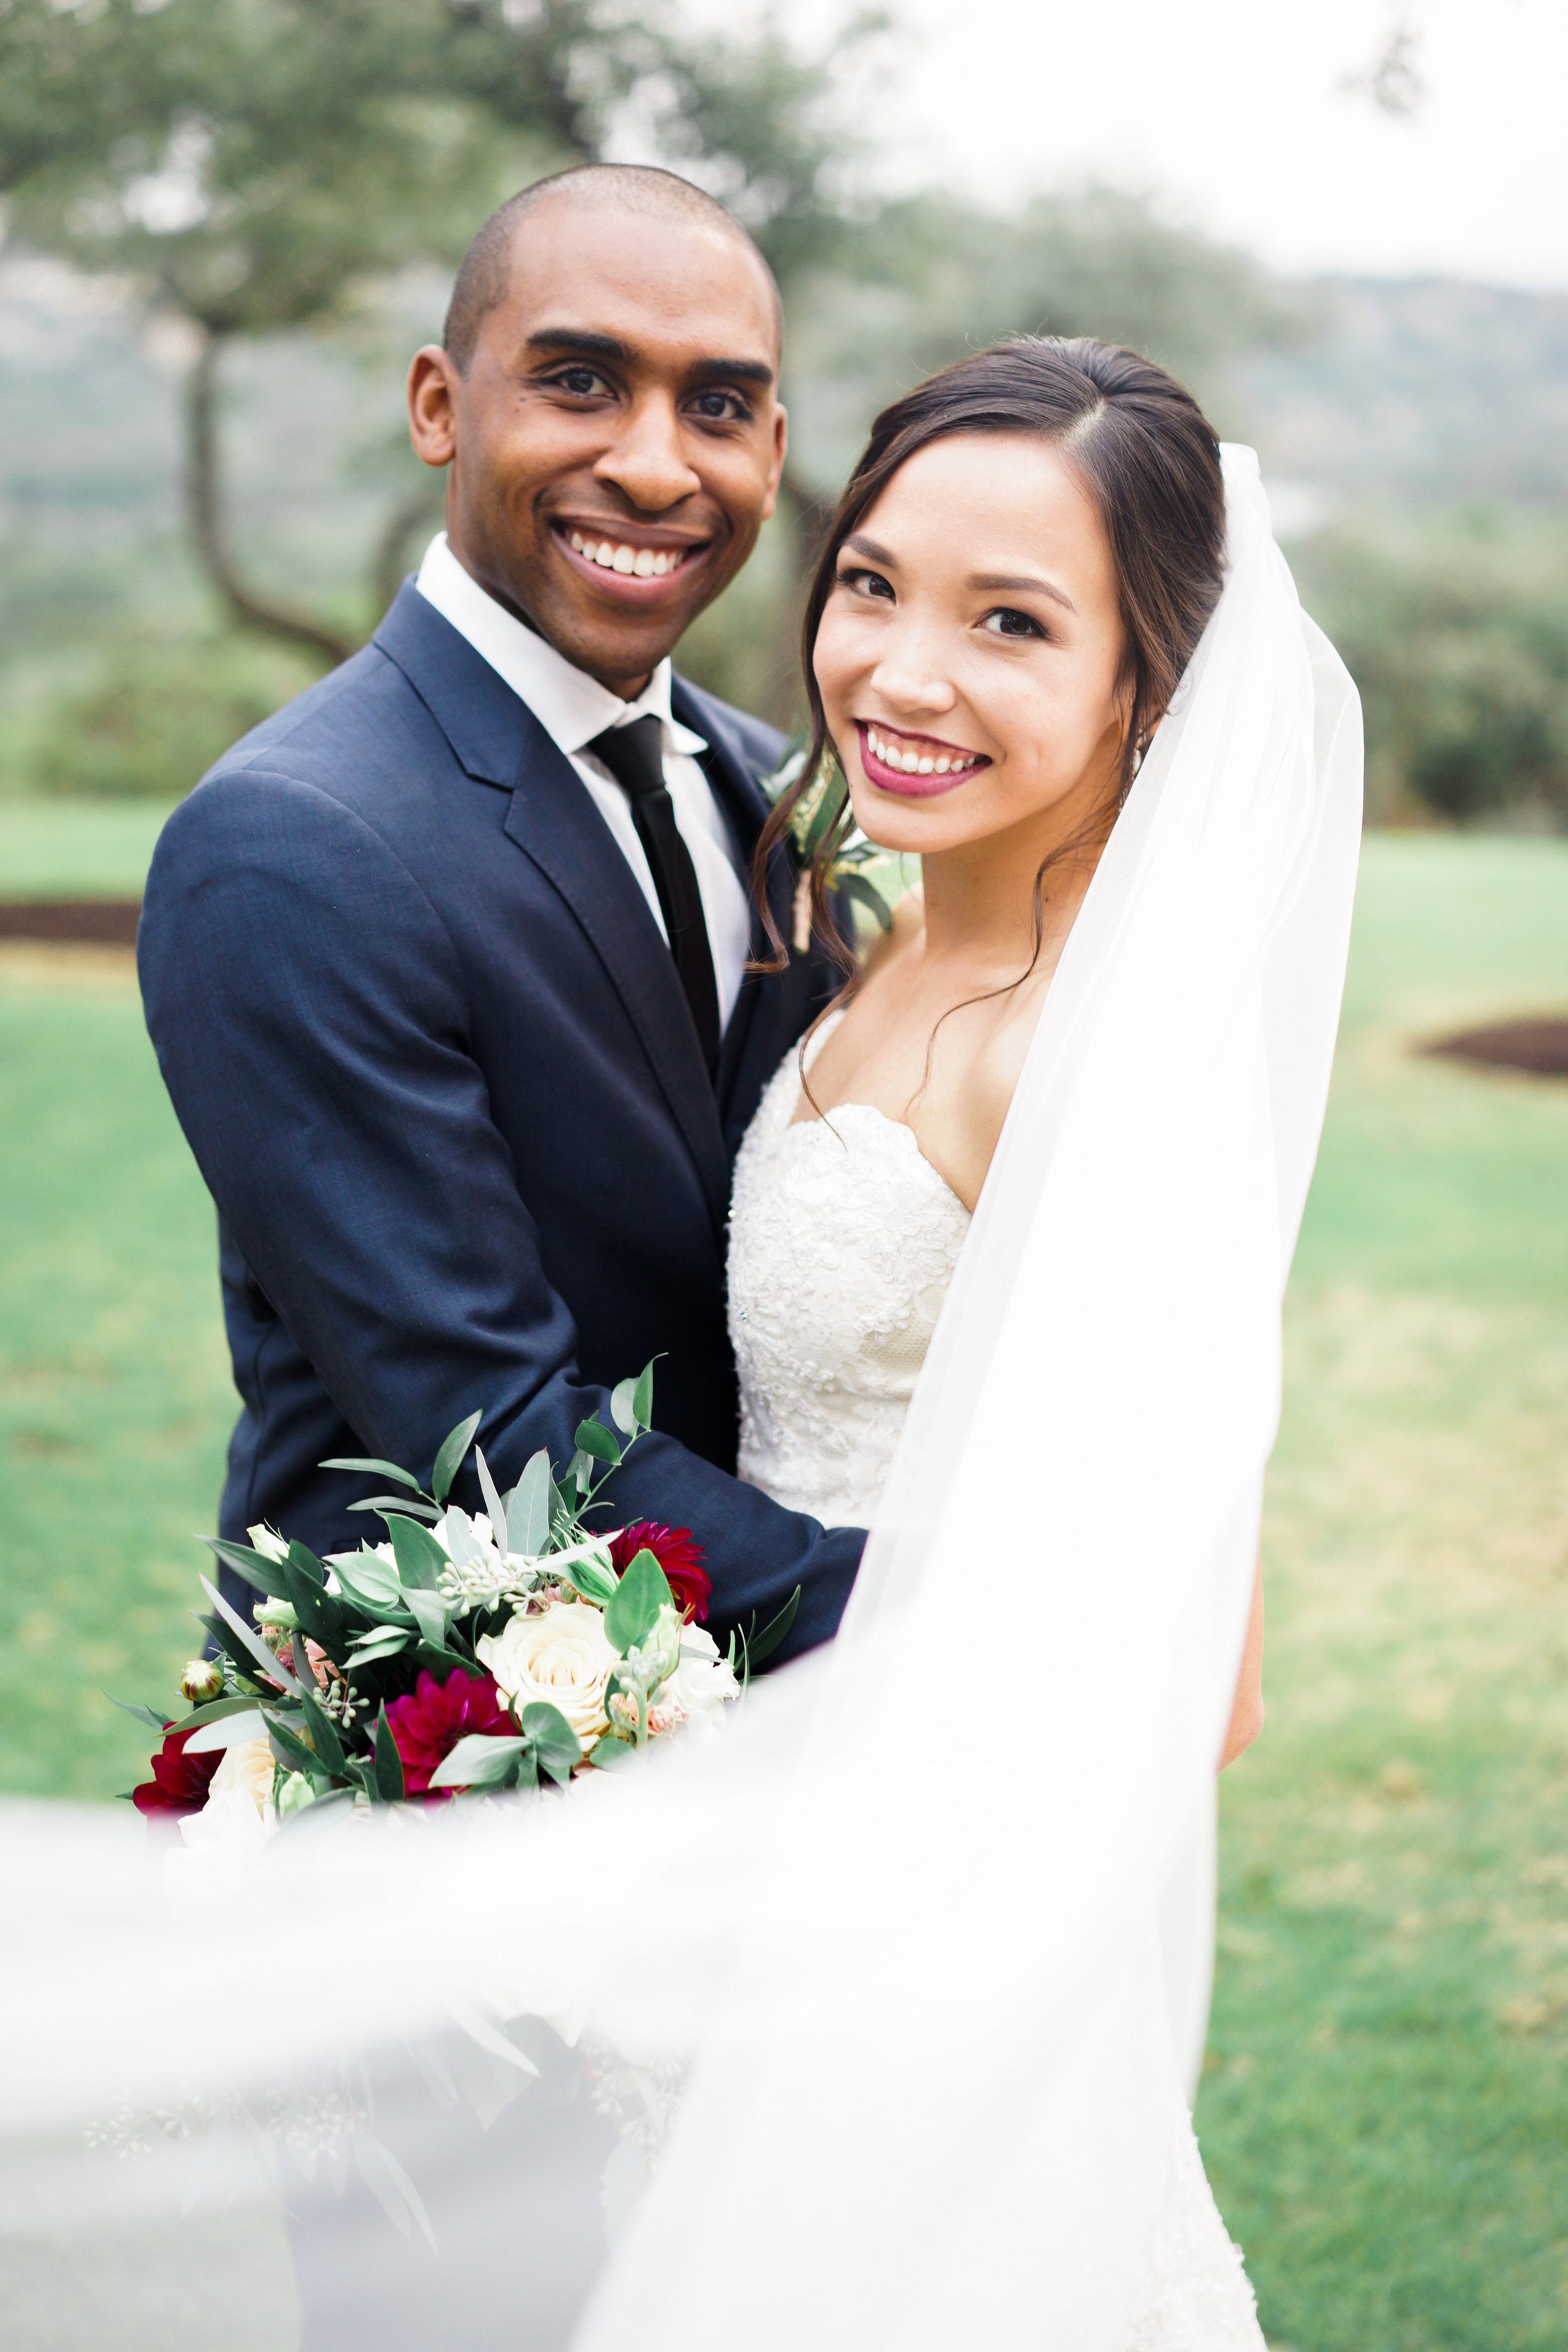 Such a beautiful bride and groom at their Canyonwood Ridge wedding in Dripping Springs!